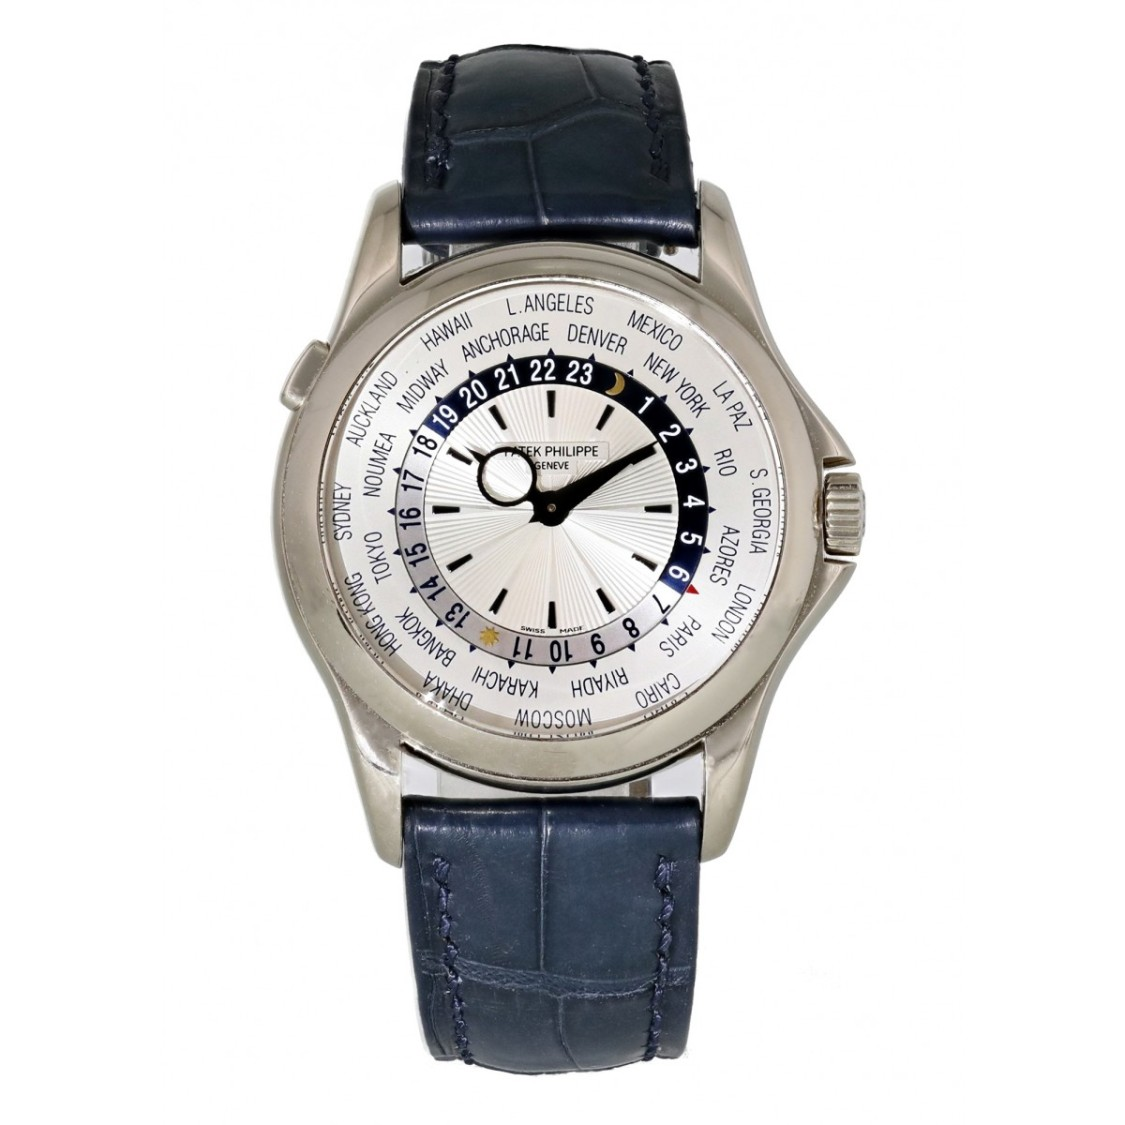 Patek Philippe Cases COMPLICATIONS WORLD TIME 5130G MENS WATCH